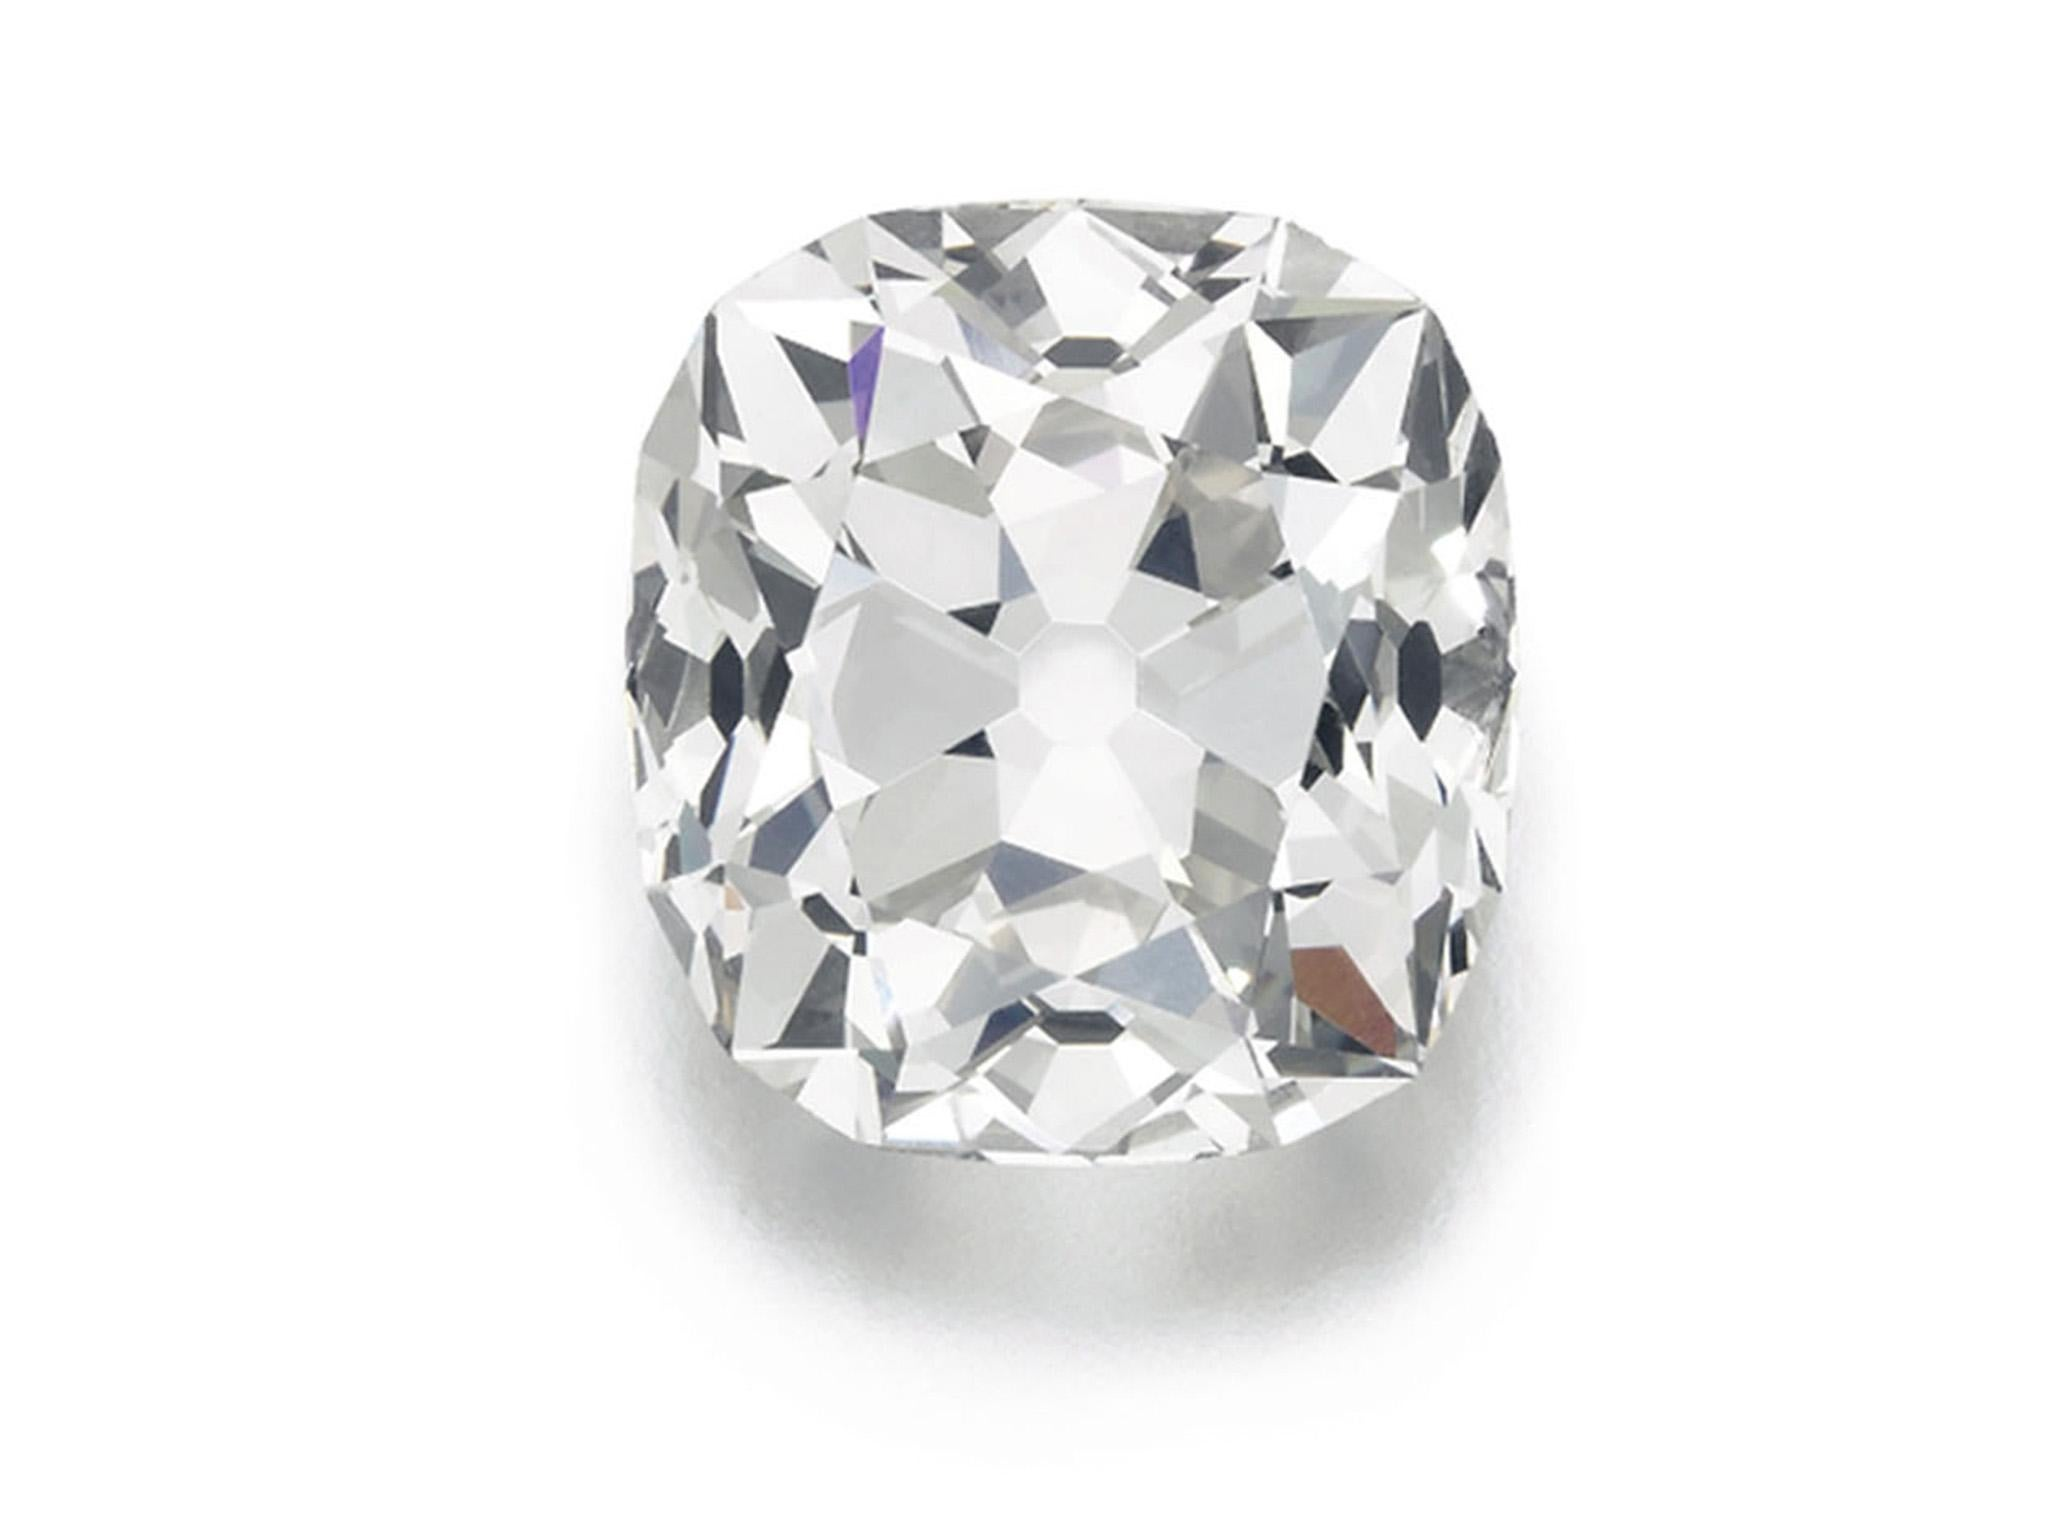 Car Auction Apps >> Diamond ring bought for £10 at car boot sale fetches £656,750 at auction | The Independent